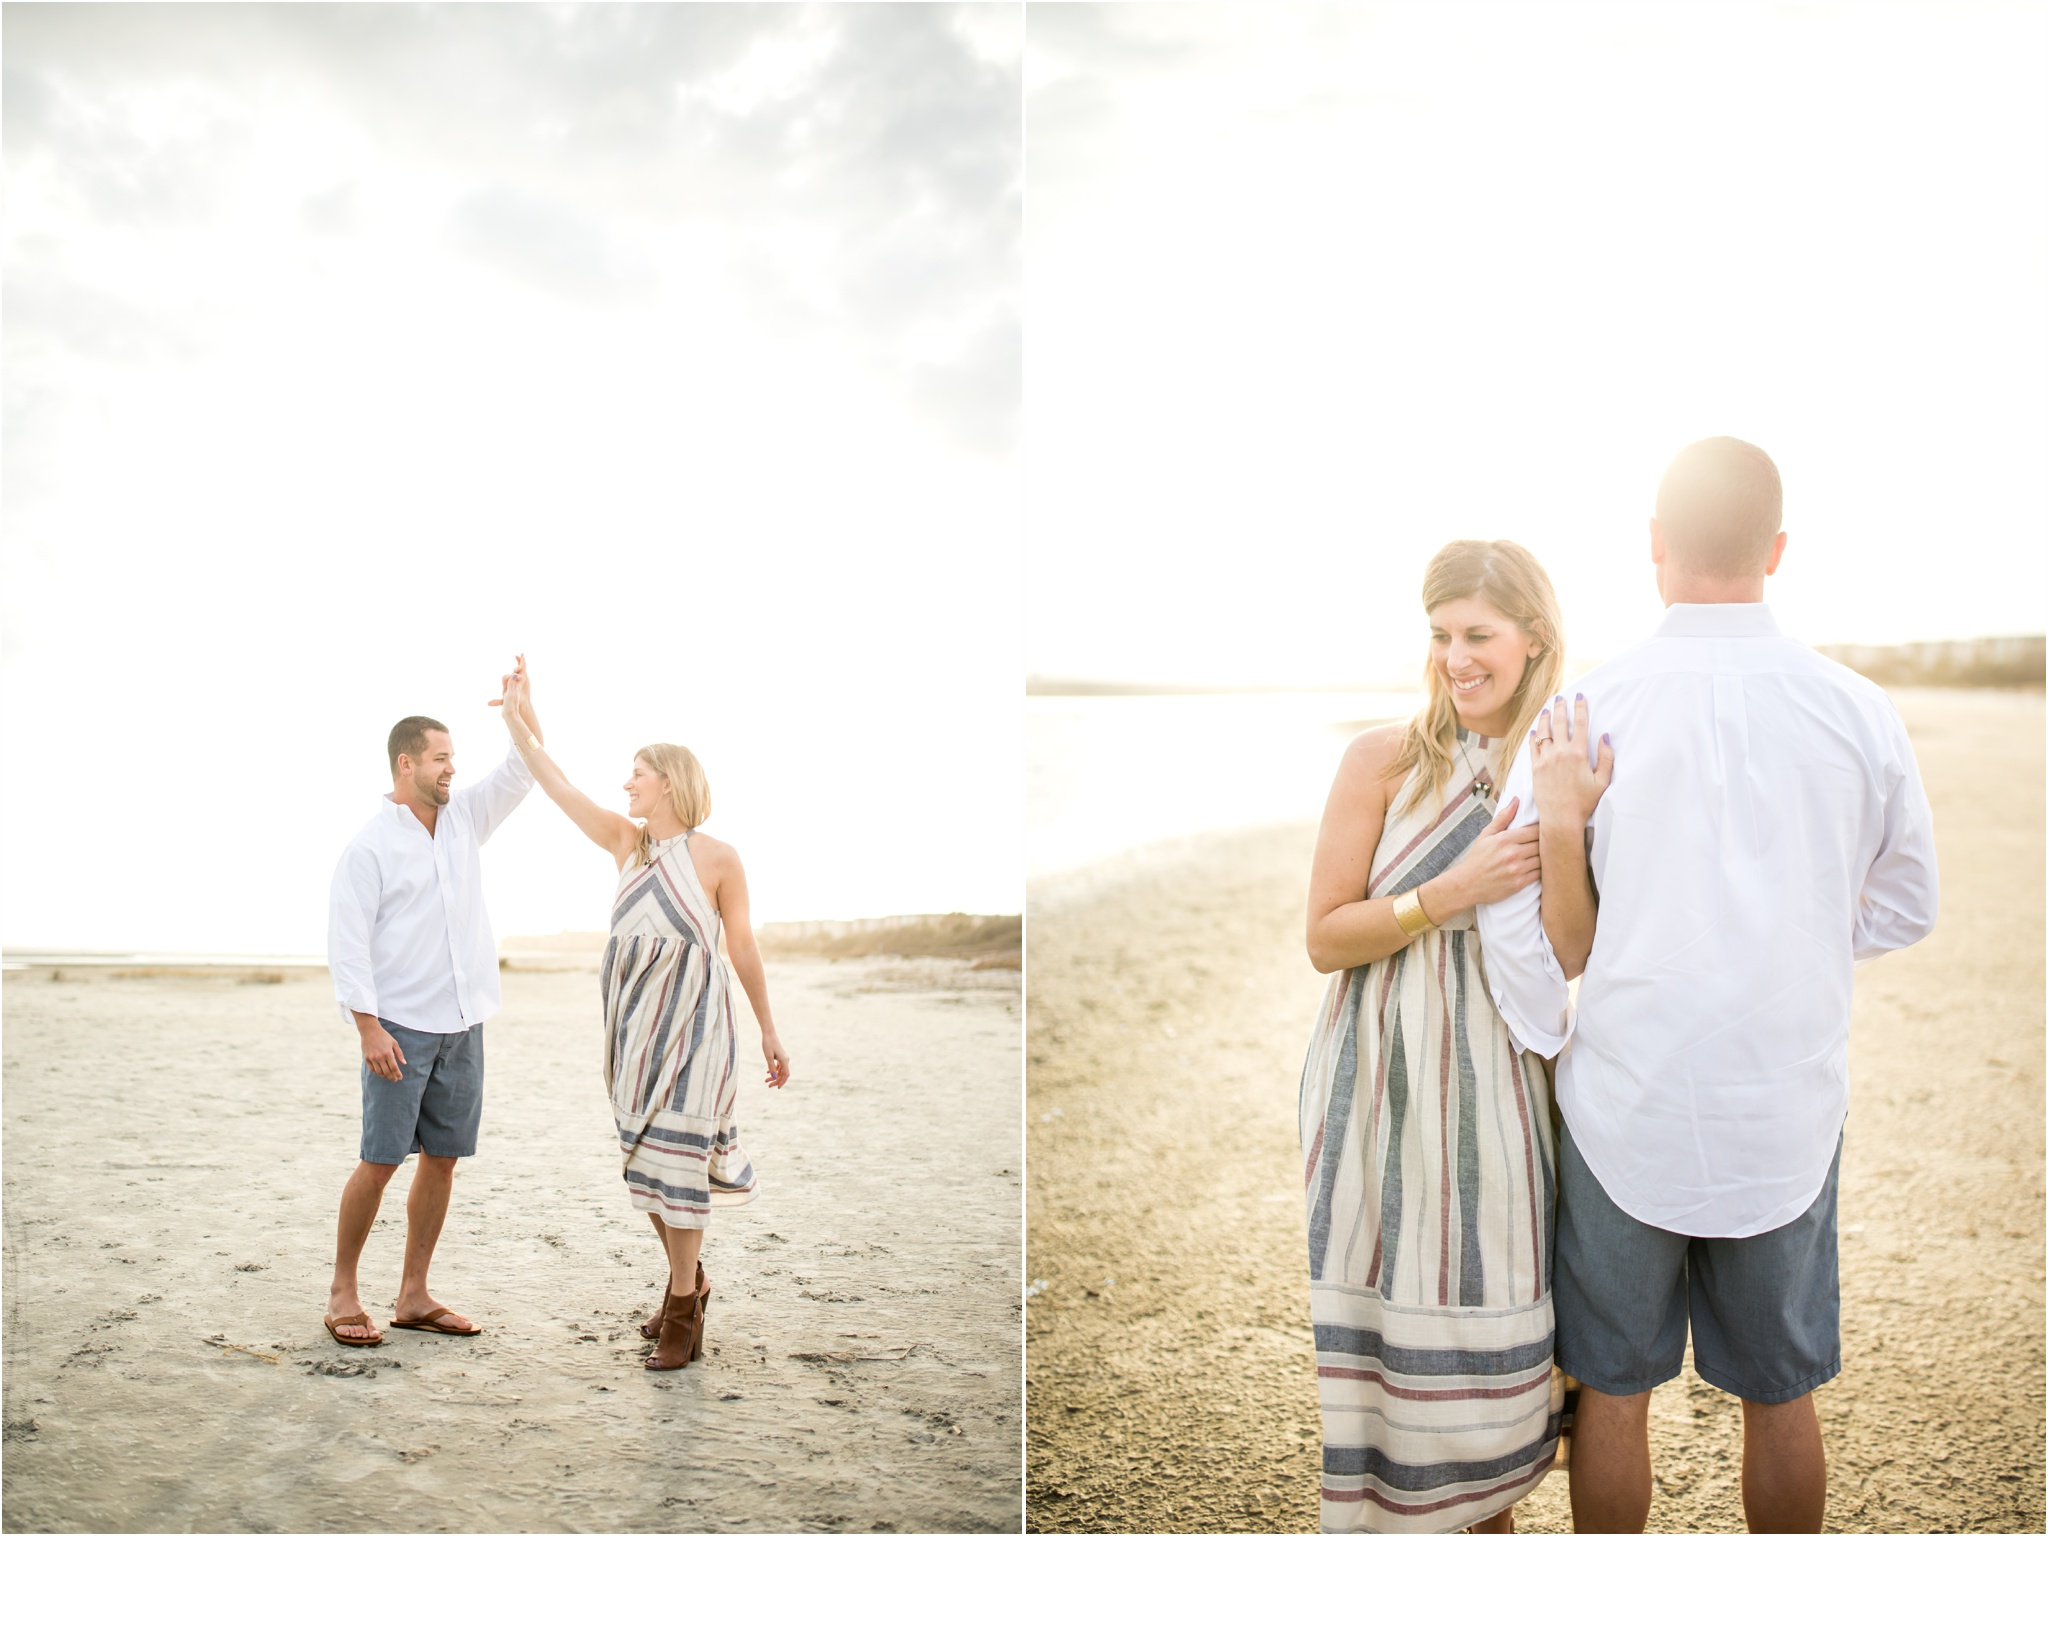 Rainey_Gregg_Photography_St._Simons_Island_Georgia_California_Wedding_Portrait_Photography_0557.jpg